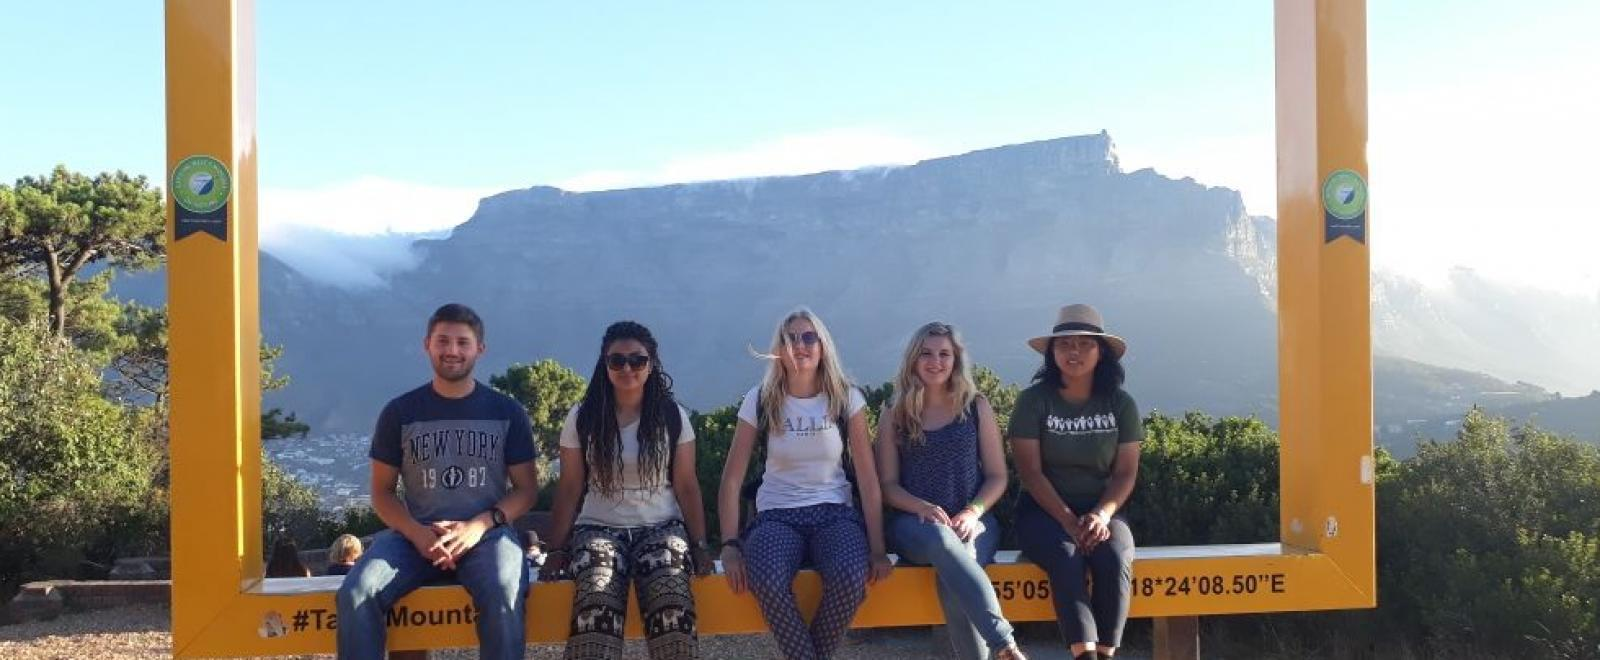 Table Mountains acts as a backdrop to a Projects Abroad volunteer's visit to Cape Town in South Africa.